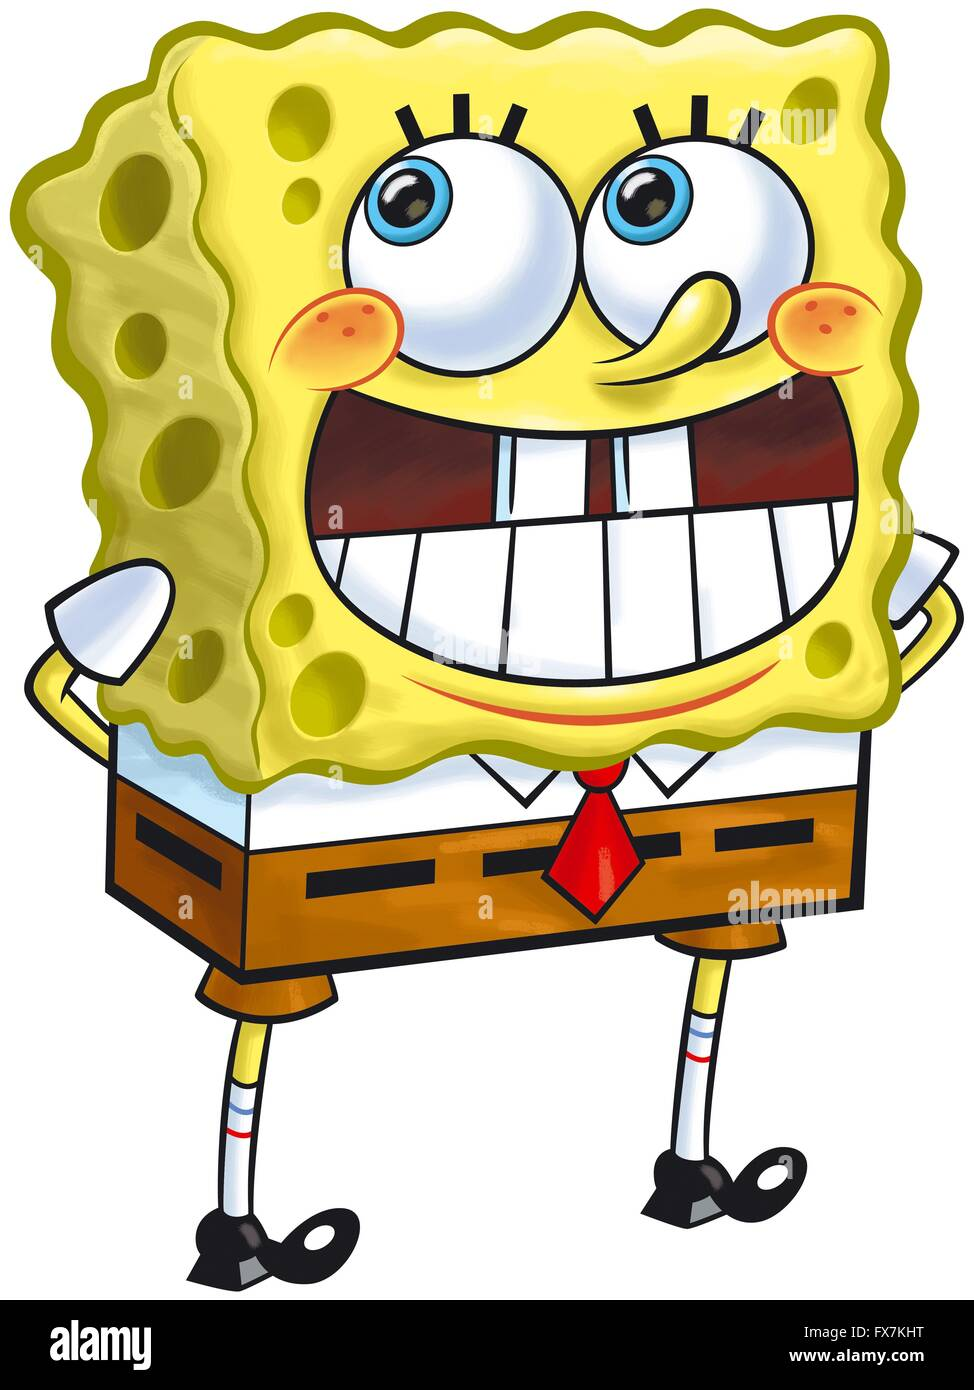 spongebob squarepants tv stock photos u0026 spongebob squarepants tv